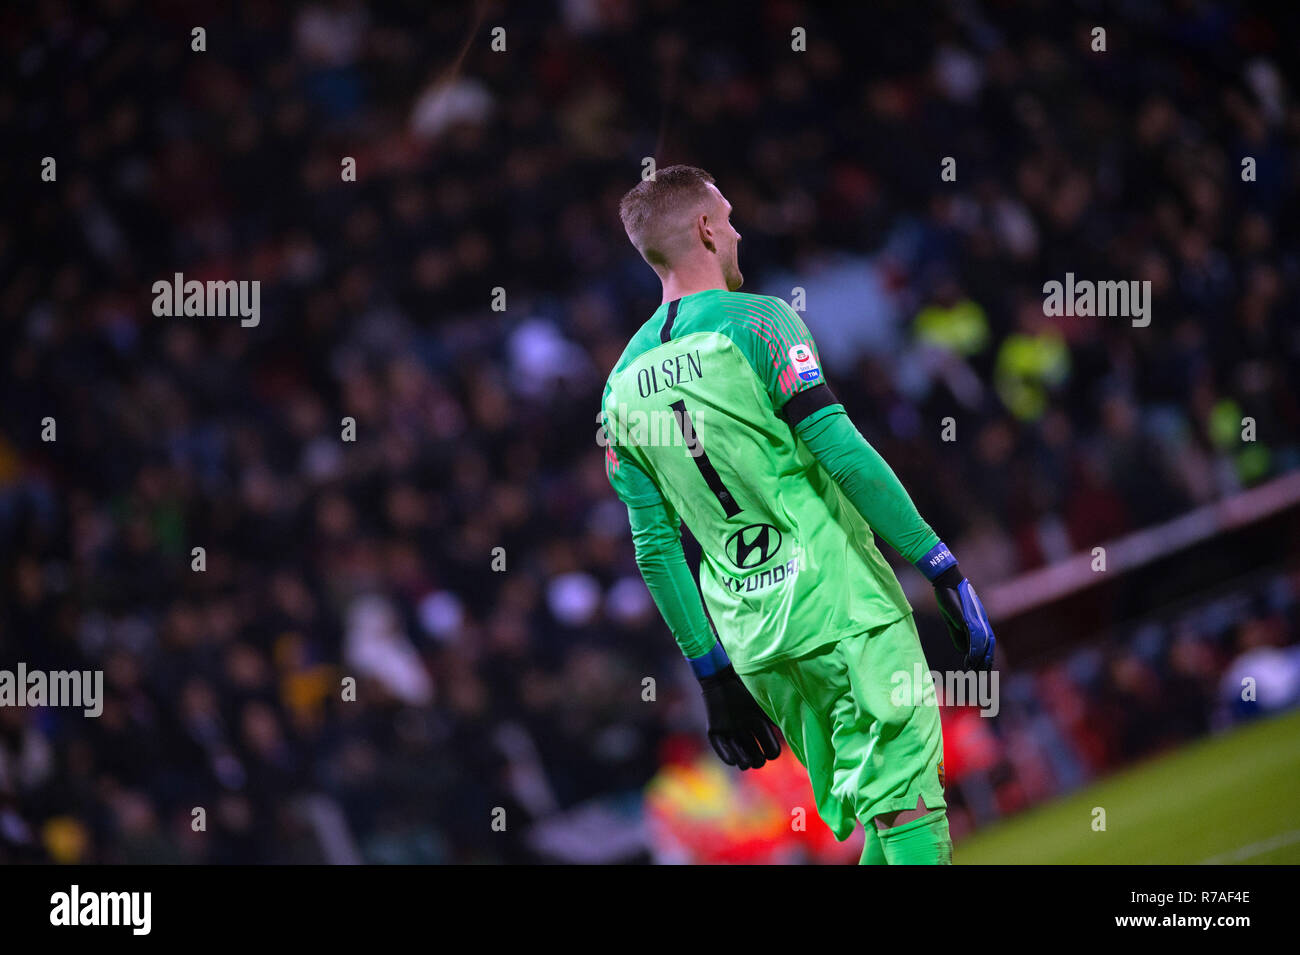 Roma Vs Cagliari High Resolution Stock Photography and Images - Alamy